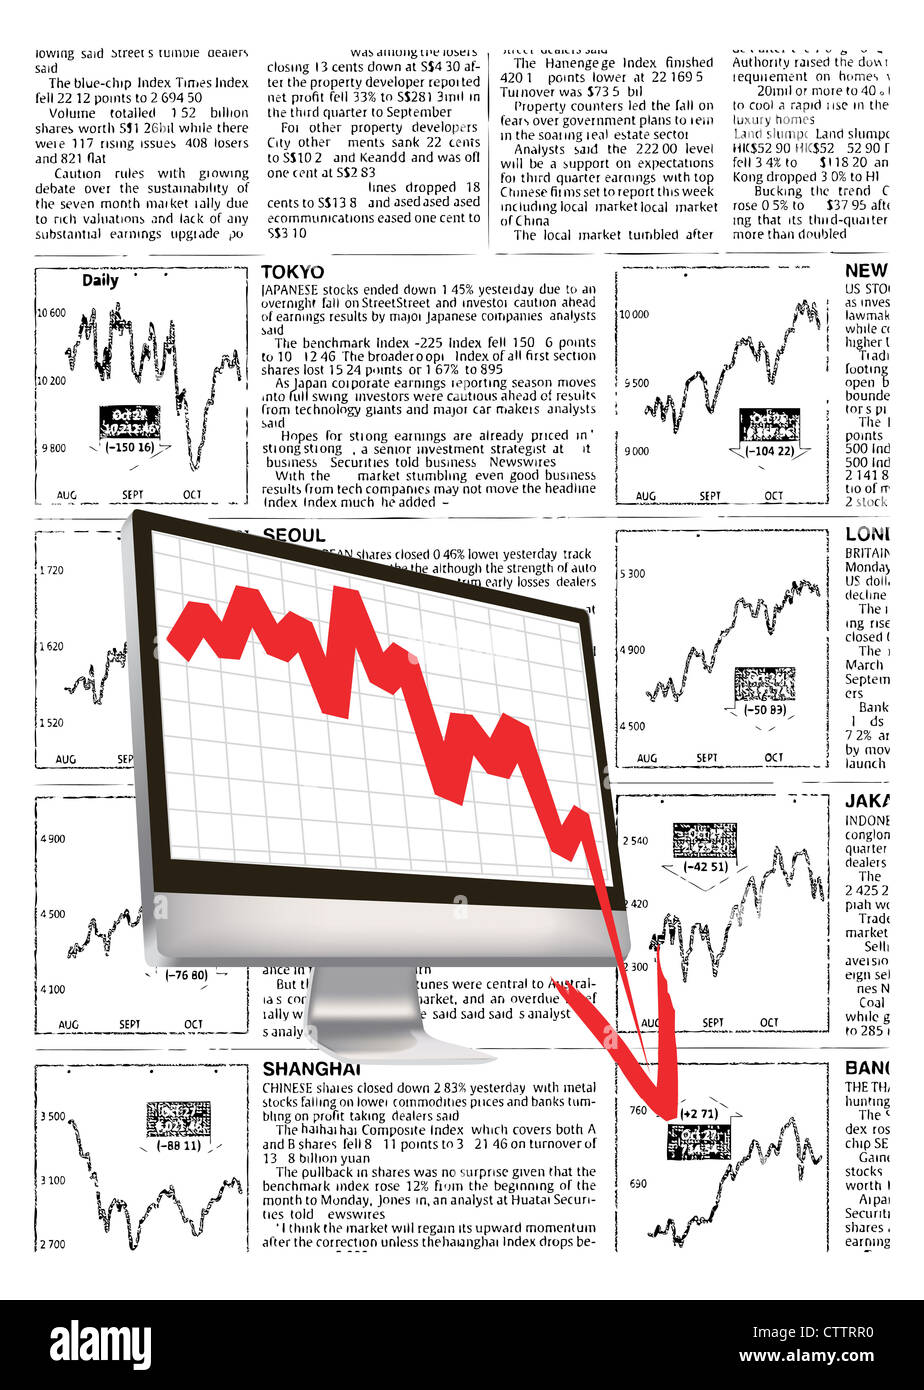 financial crash, with fake financial news background. - Stock Image